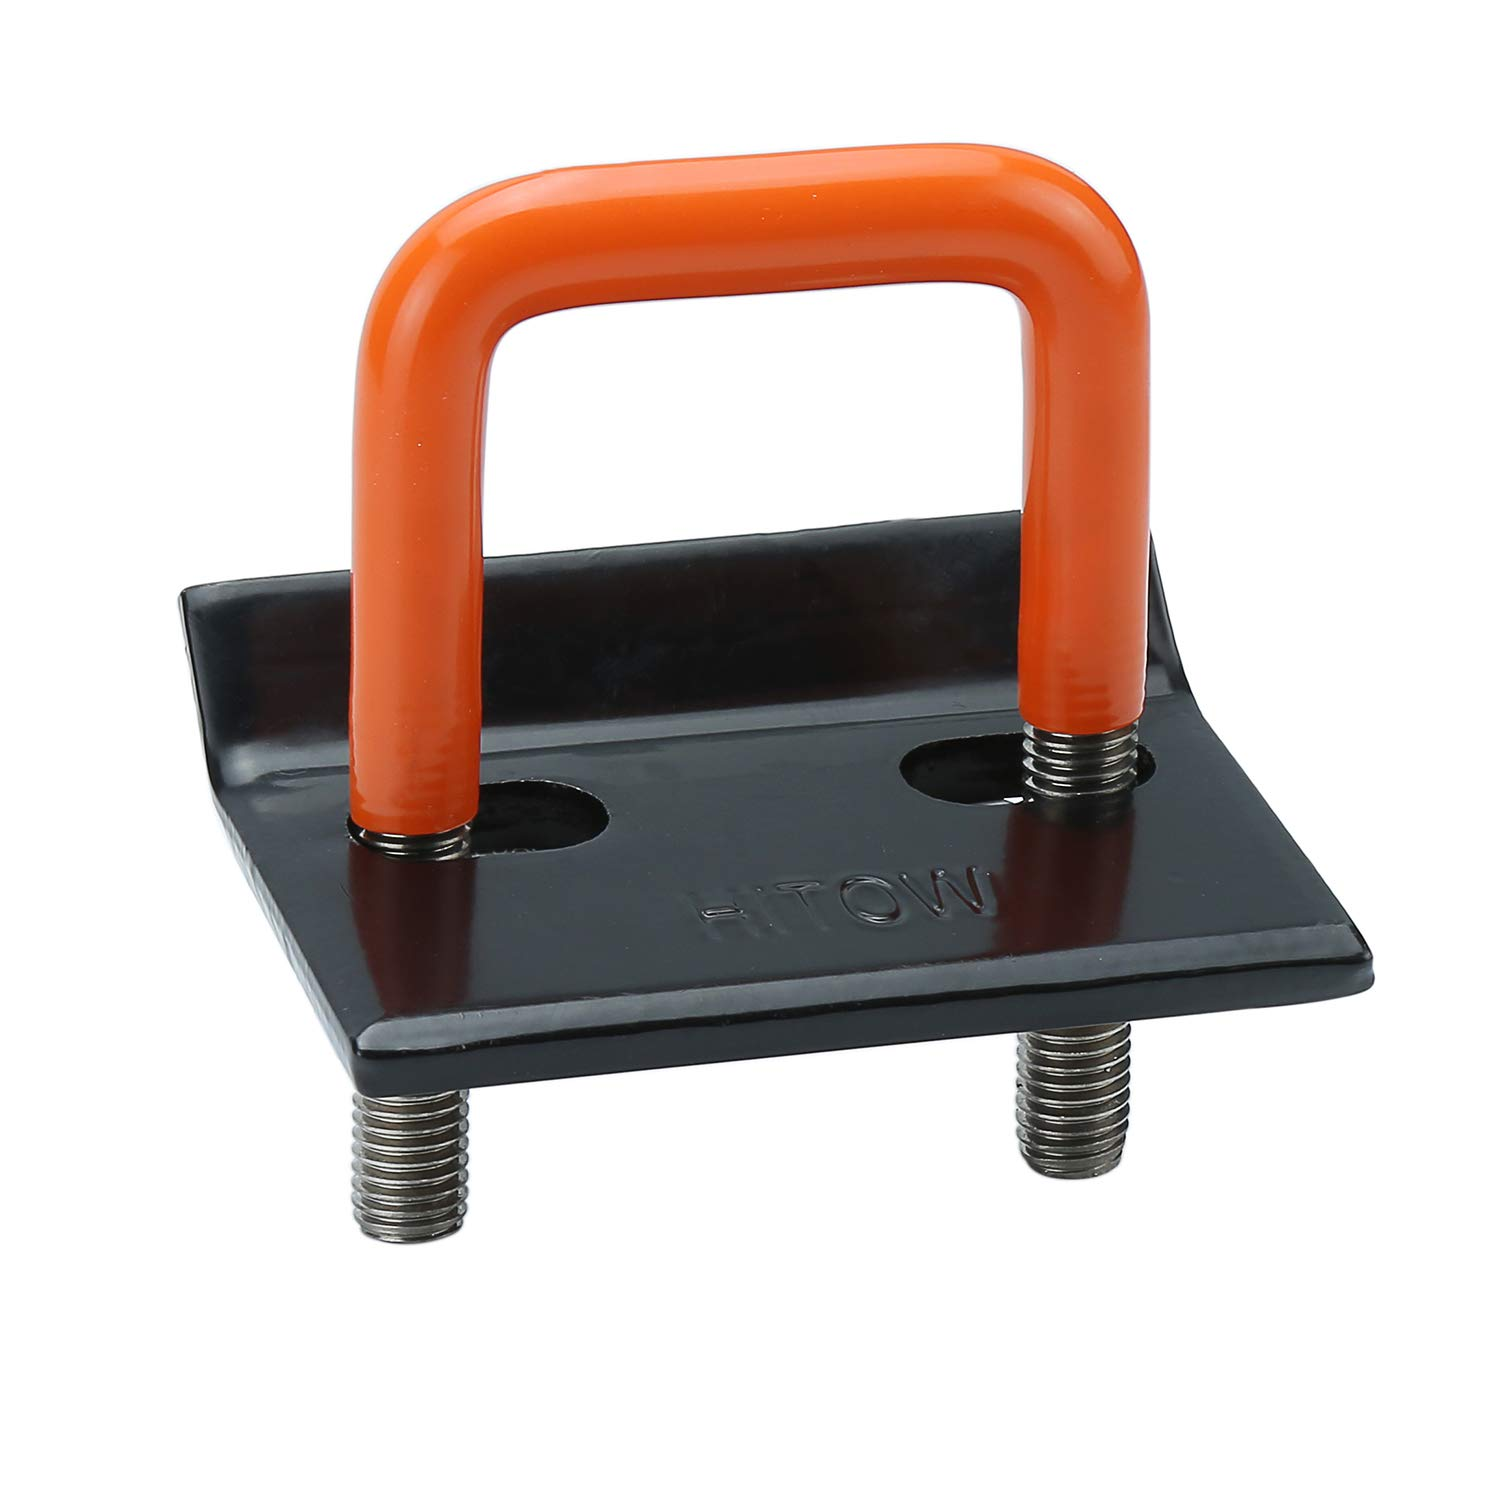 HiTow Trailer Hitch Tightener Anti-Rattle Stabilizer 2'' & 1.25'' Hitch, Rubber-Coated No Rattle Noise, Corrosion Resistant by HiTow